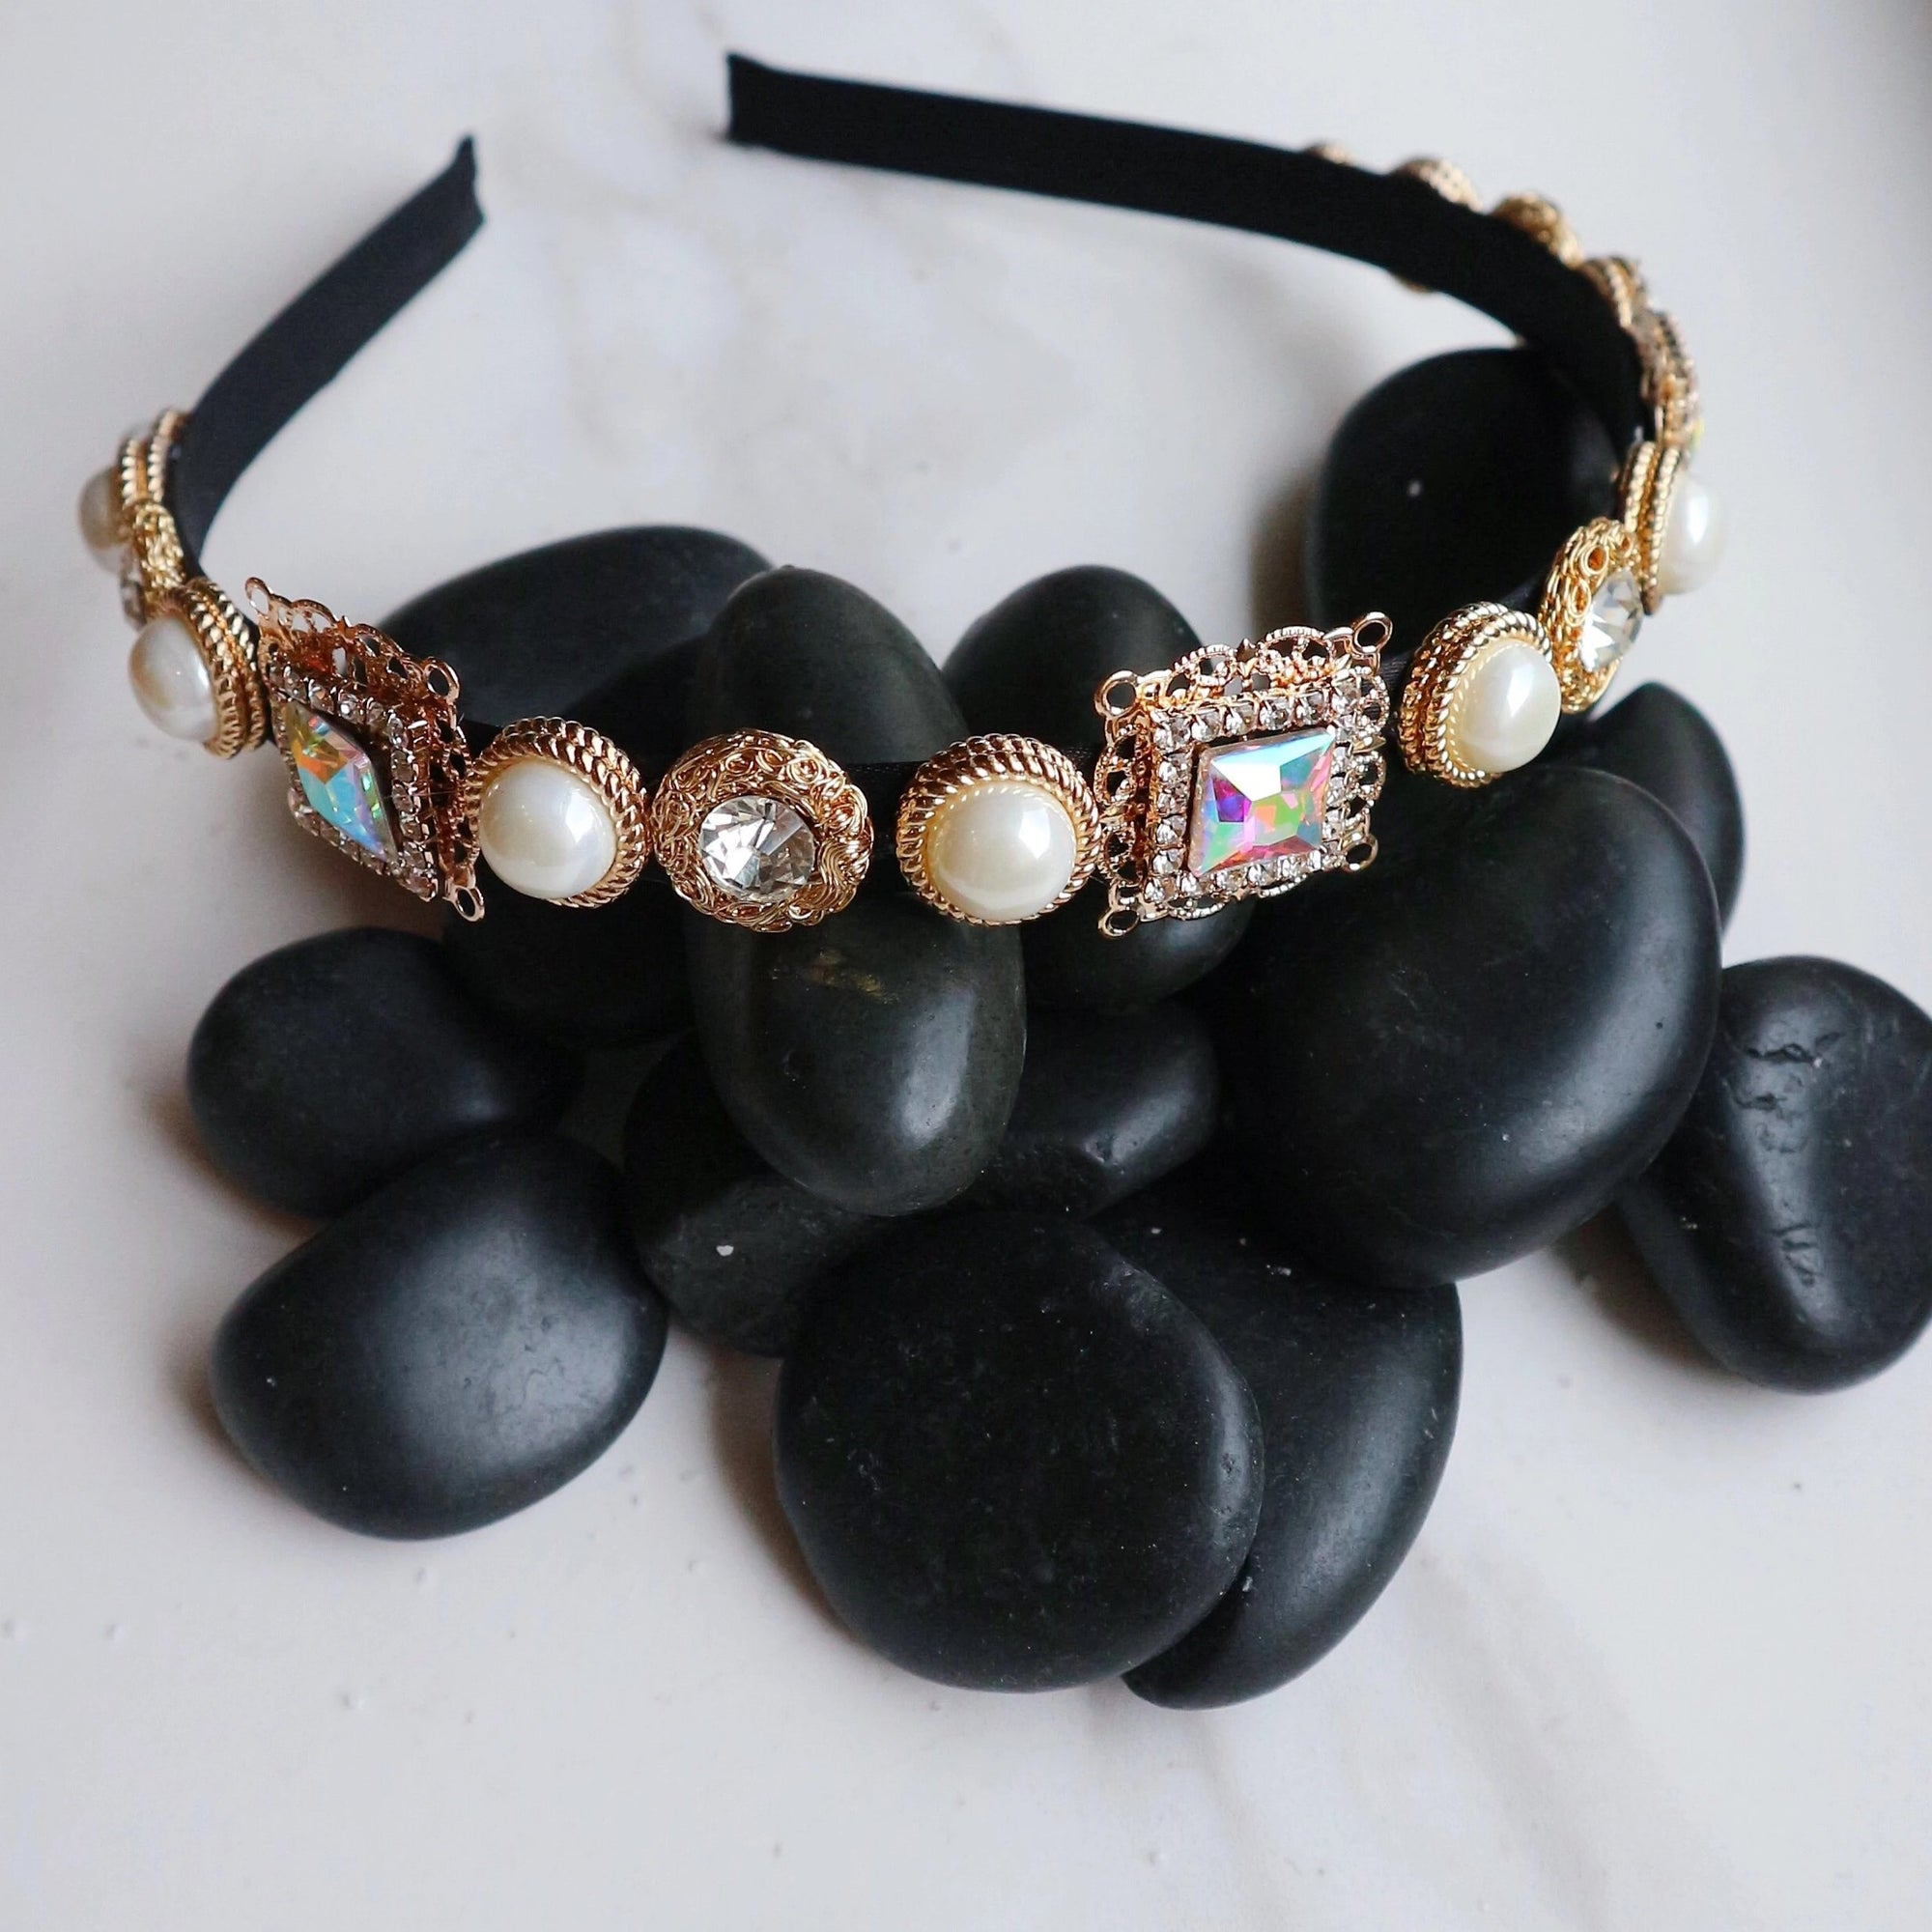 Amber Headband- Gemstone - Statement jewellery by Radiant Riviera